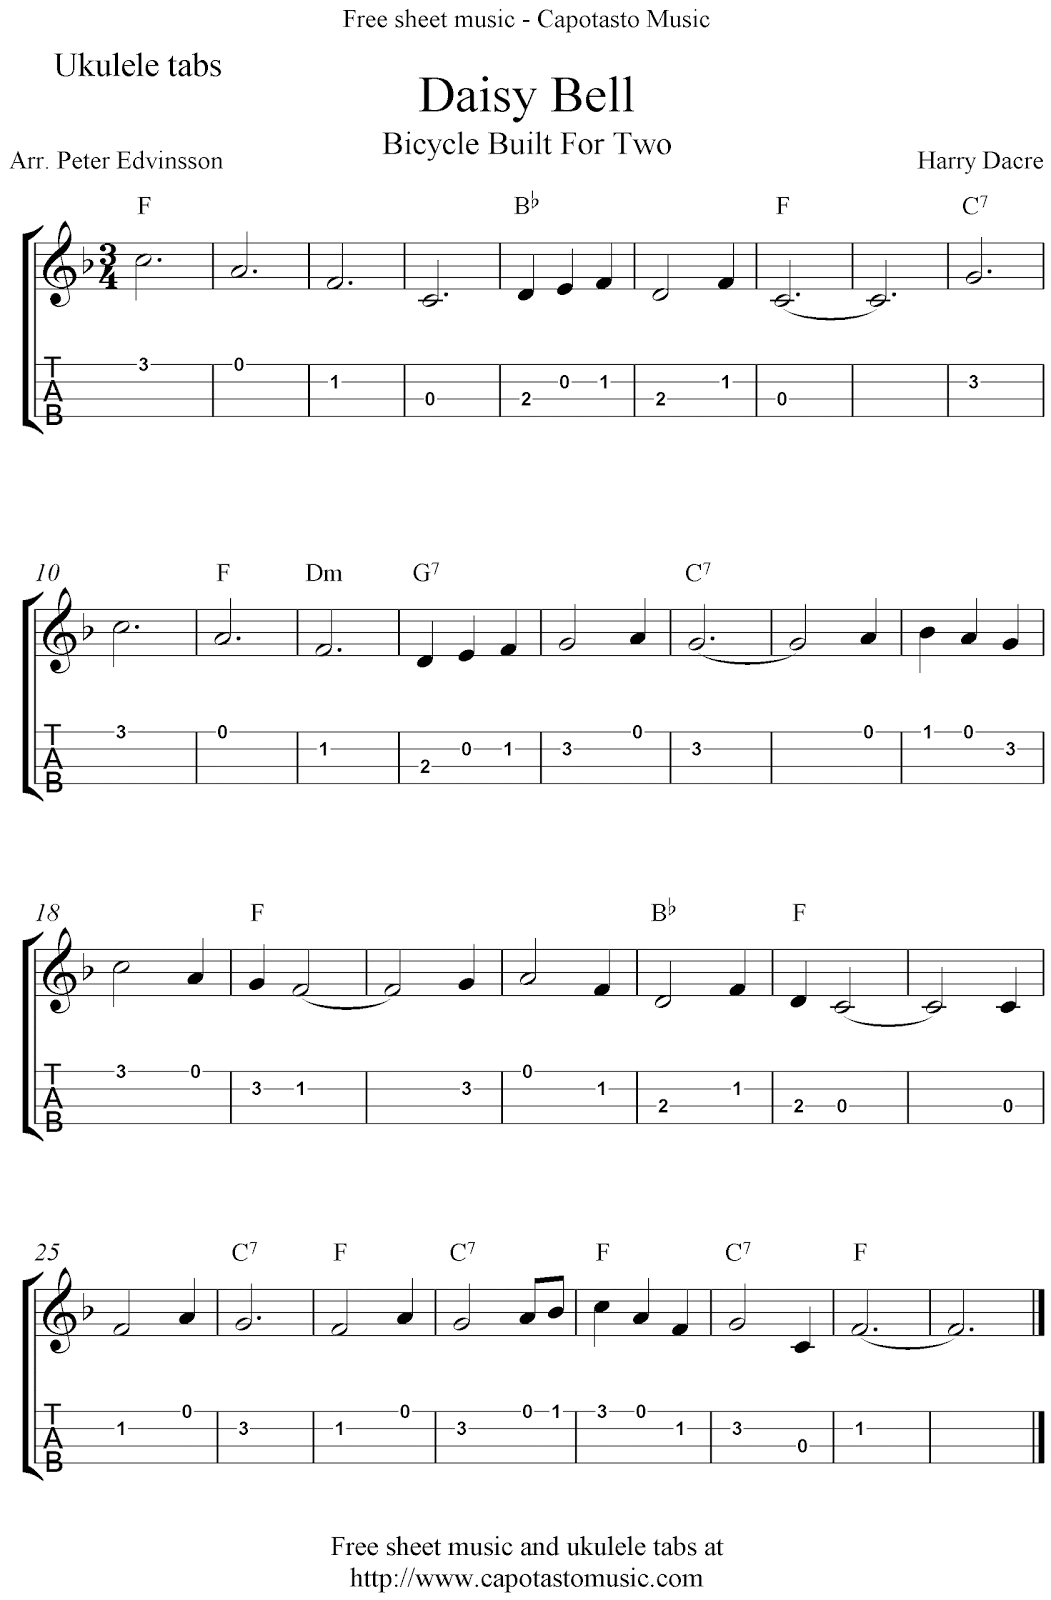 Free Printable Sheet Music Daisy Bell Bicycle Built For